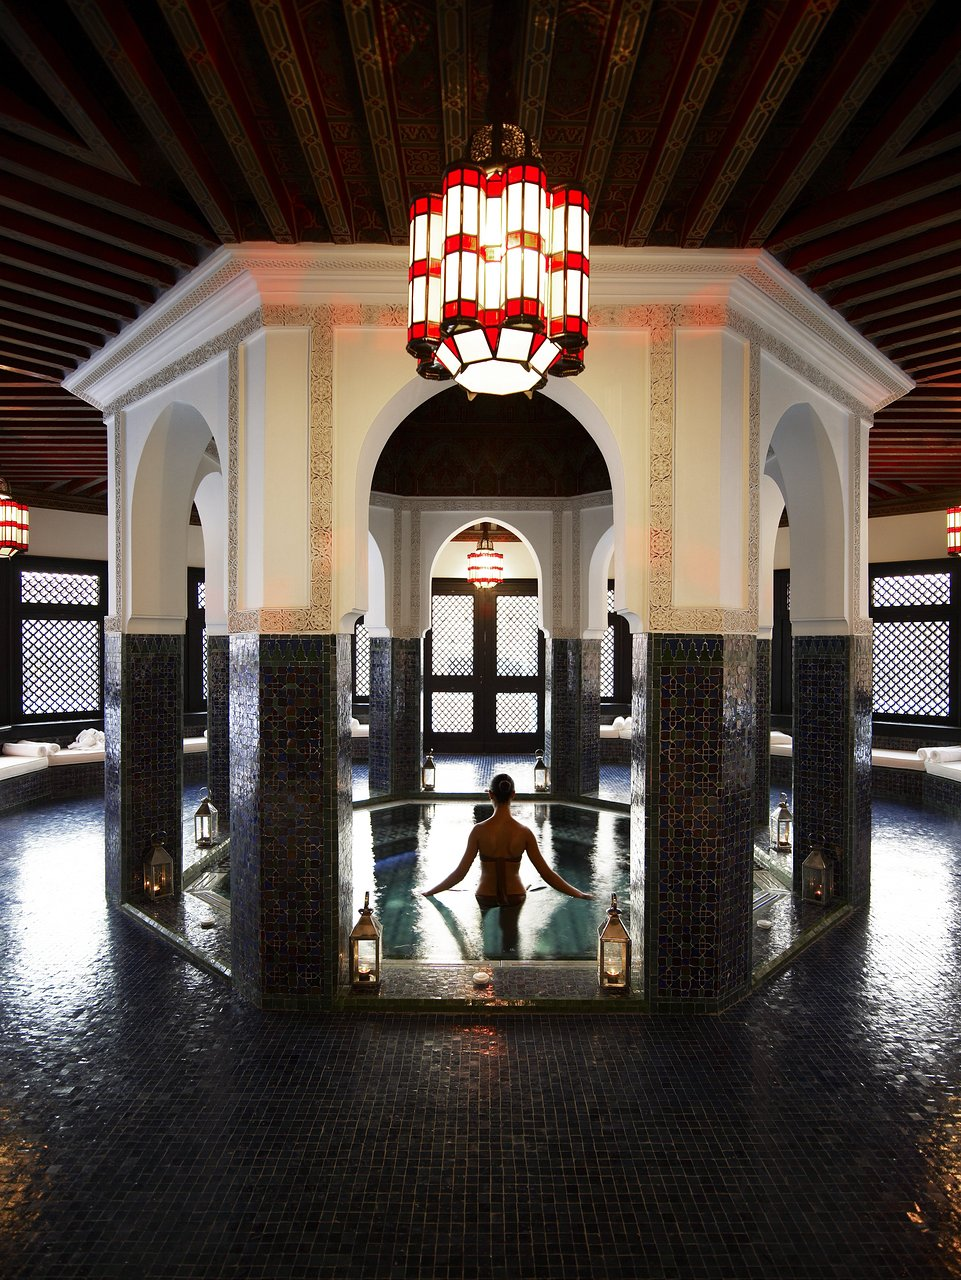 Marrakech Luxury Hotels: Expectations vs. Reality